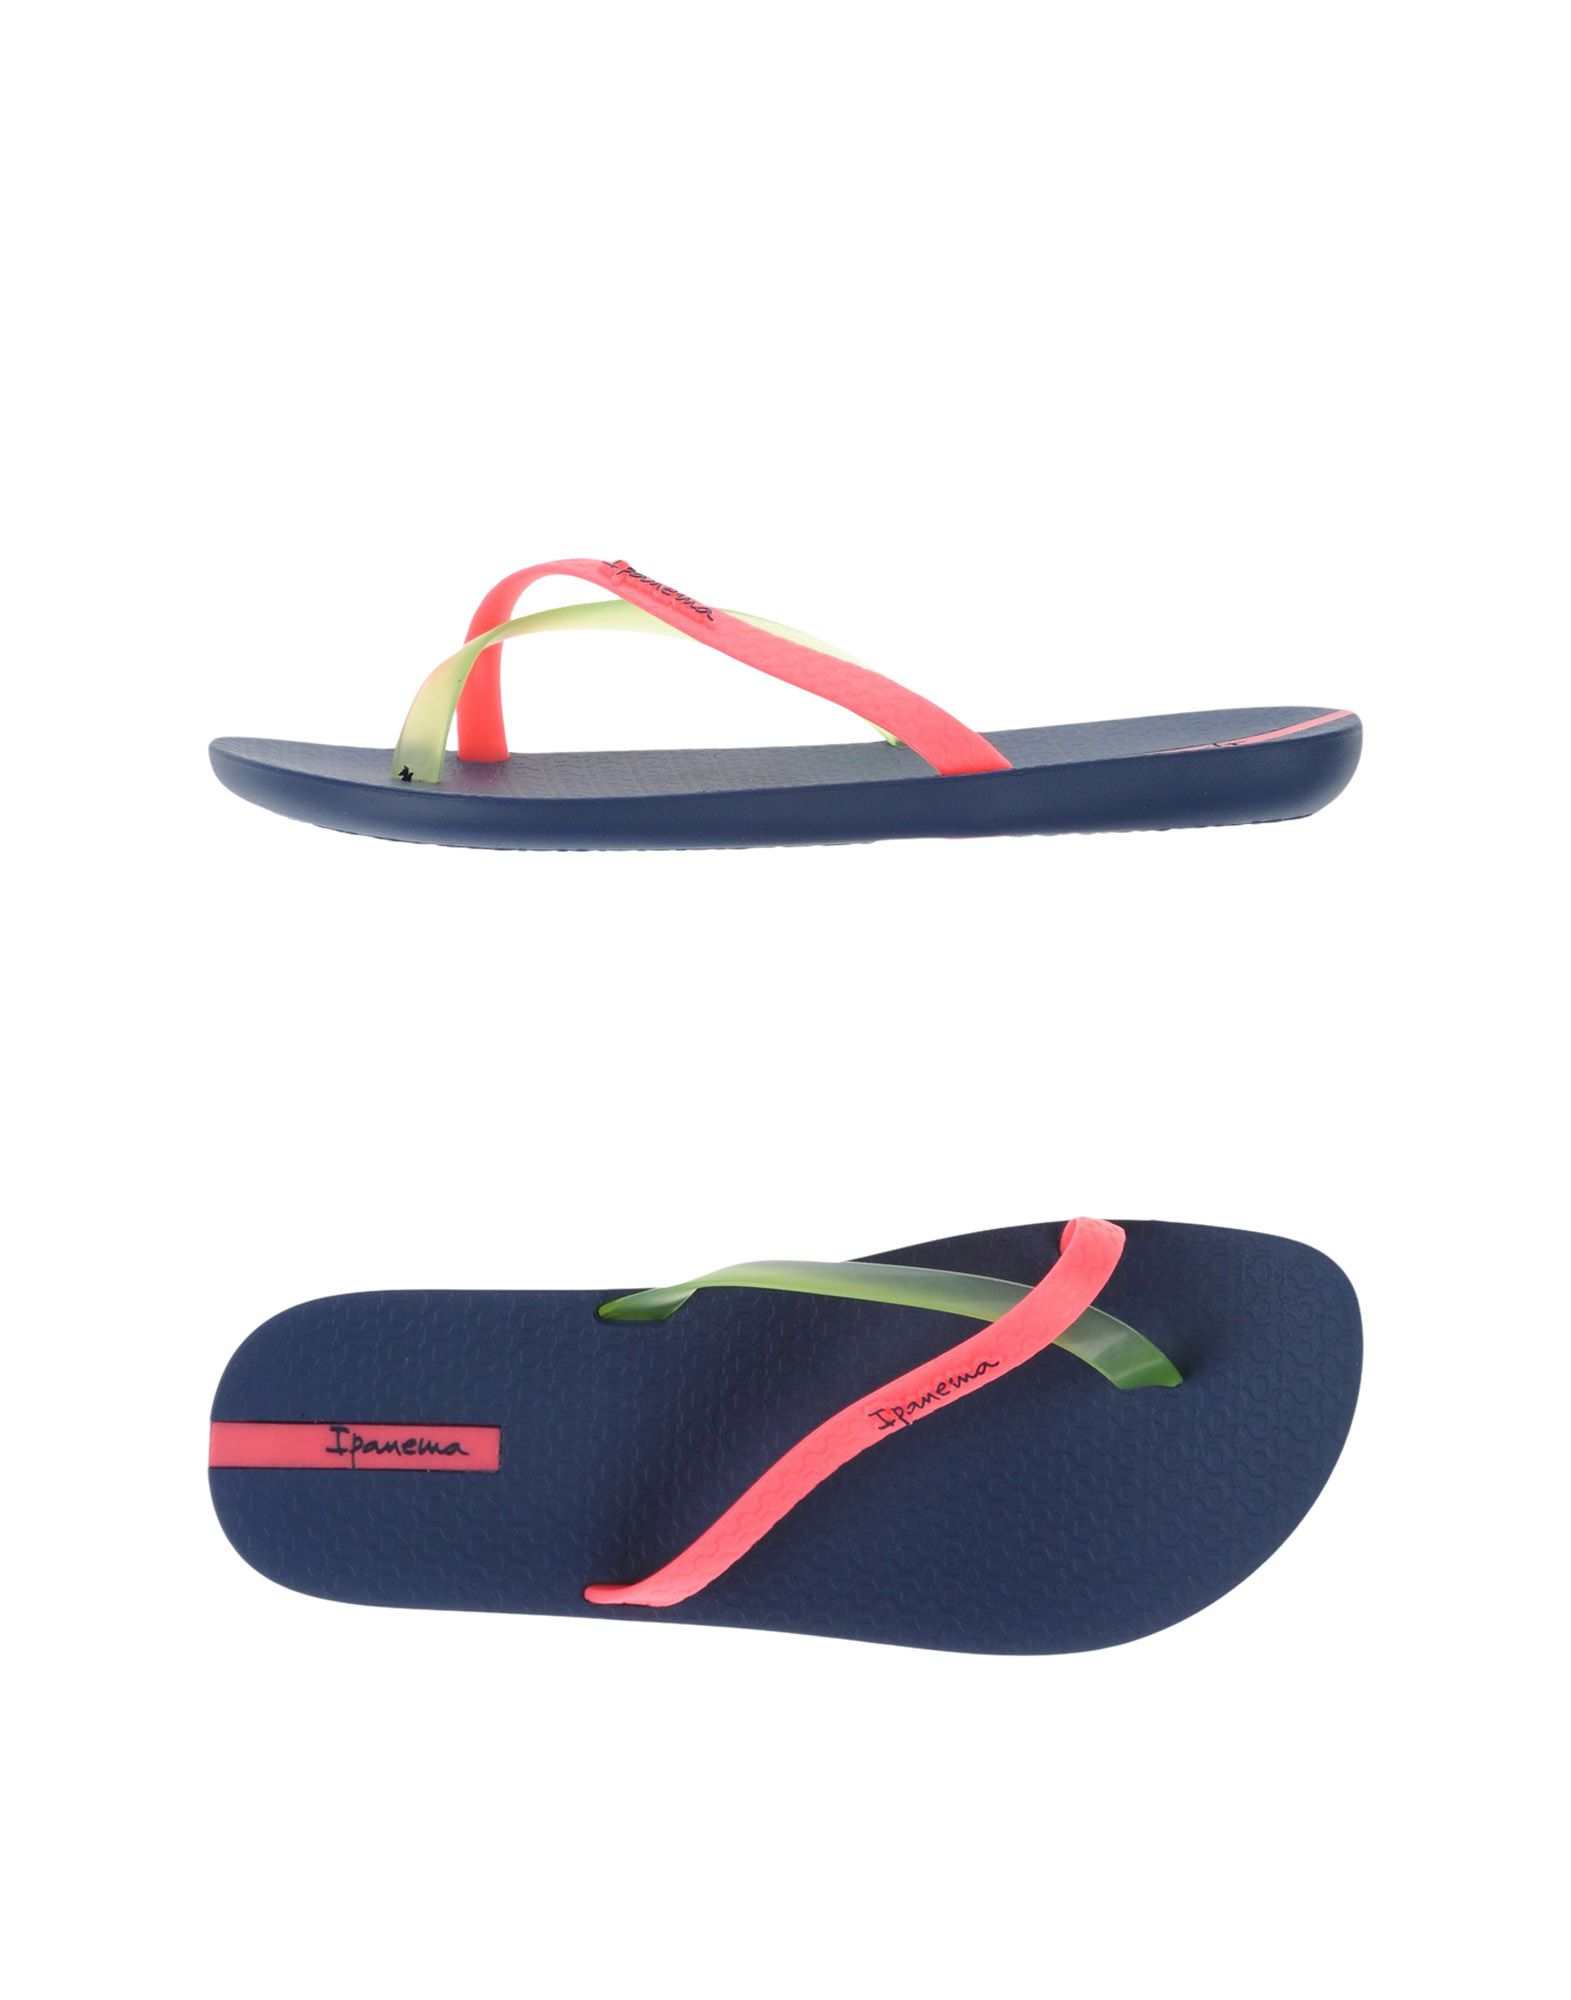 Ipanema Thong Sandal in Green